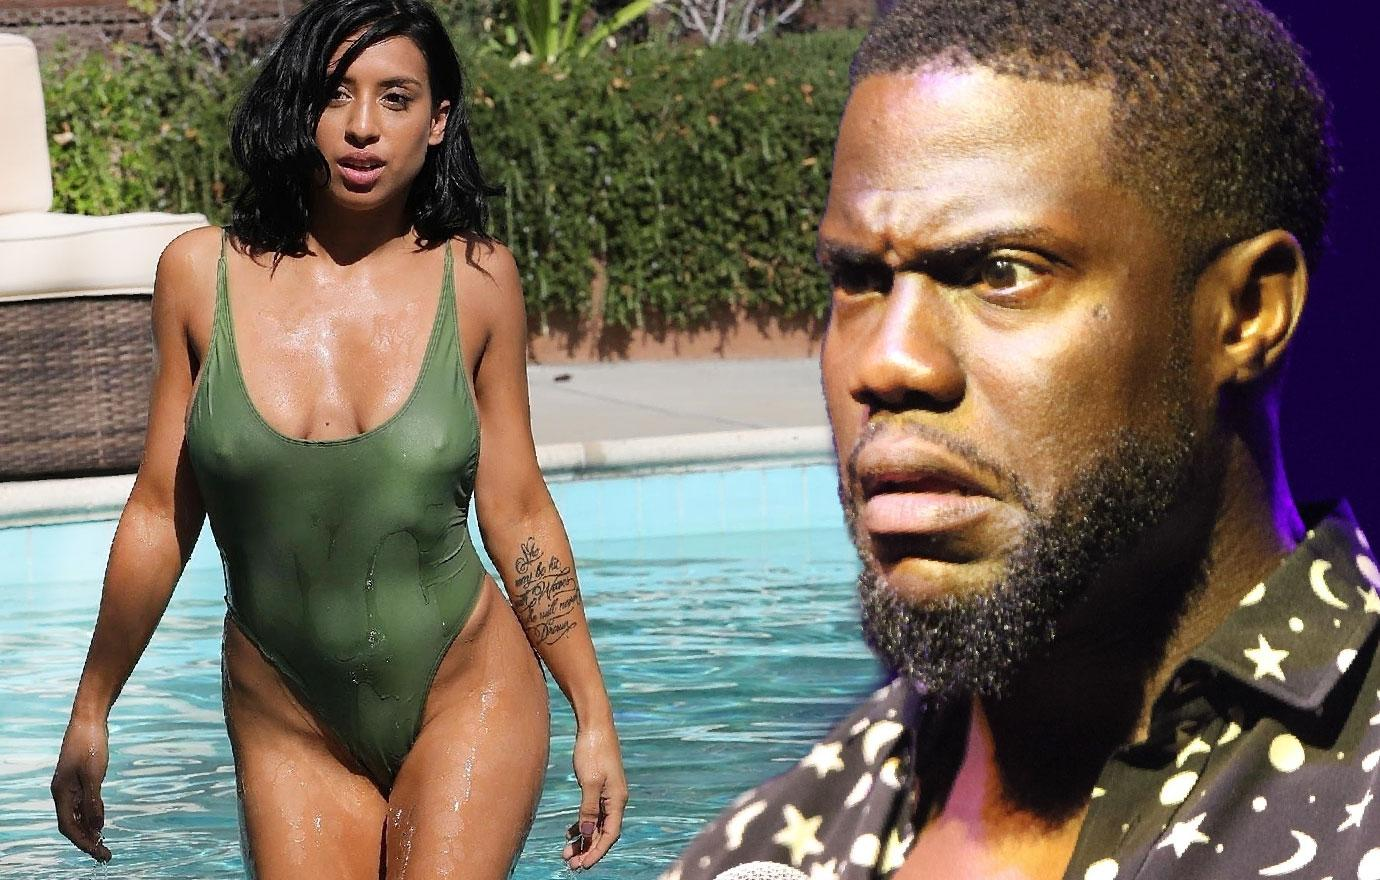 Kevin Hart Alleged Extortion Girl Swimsuit Body Photos